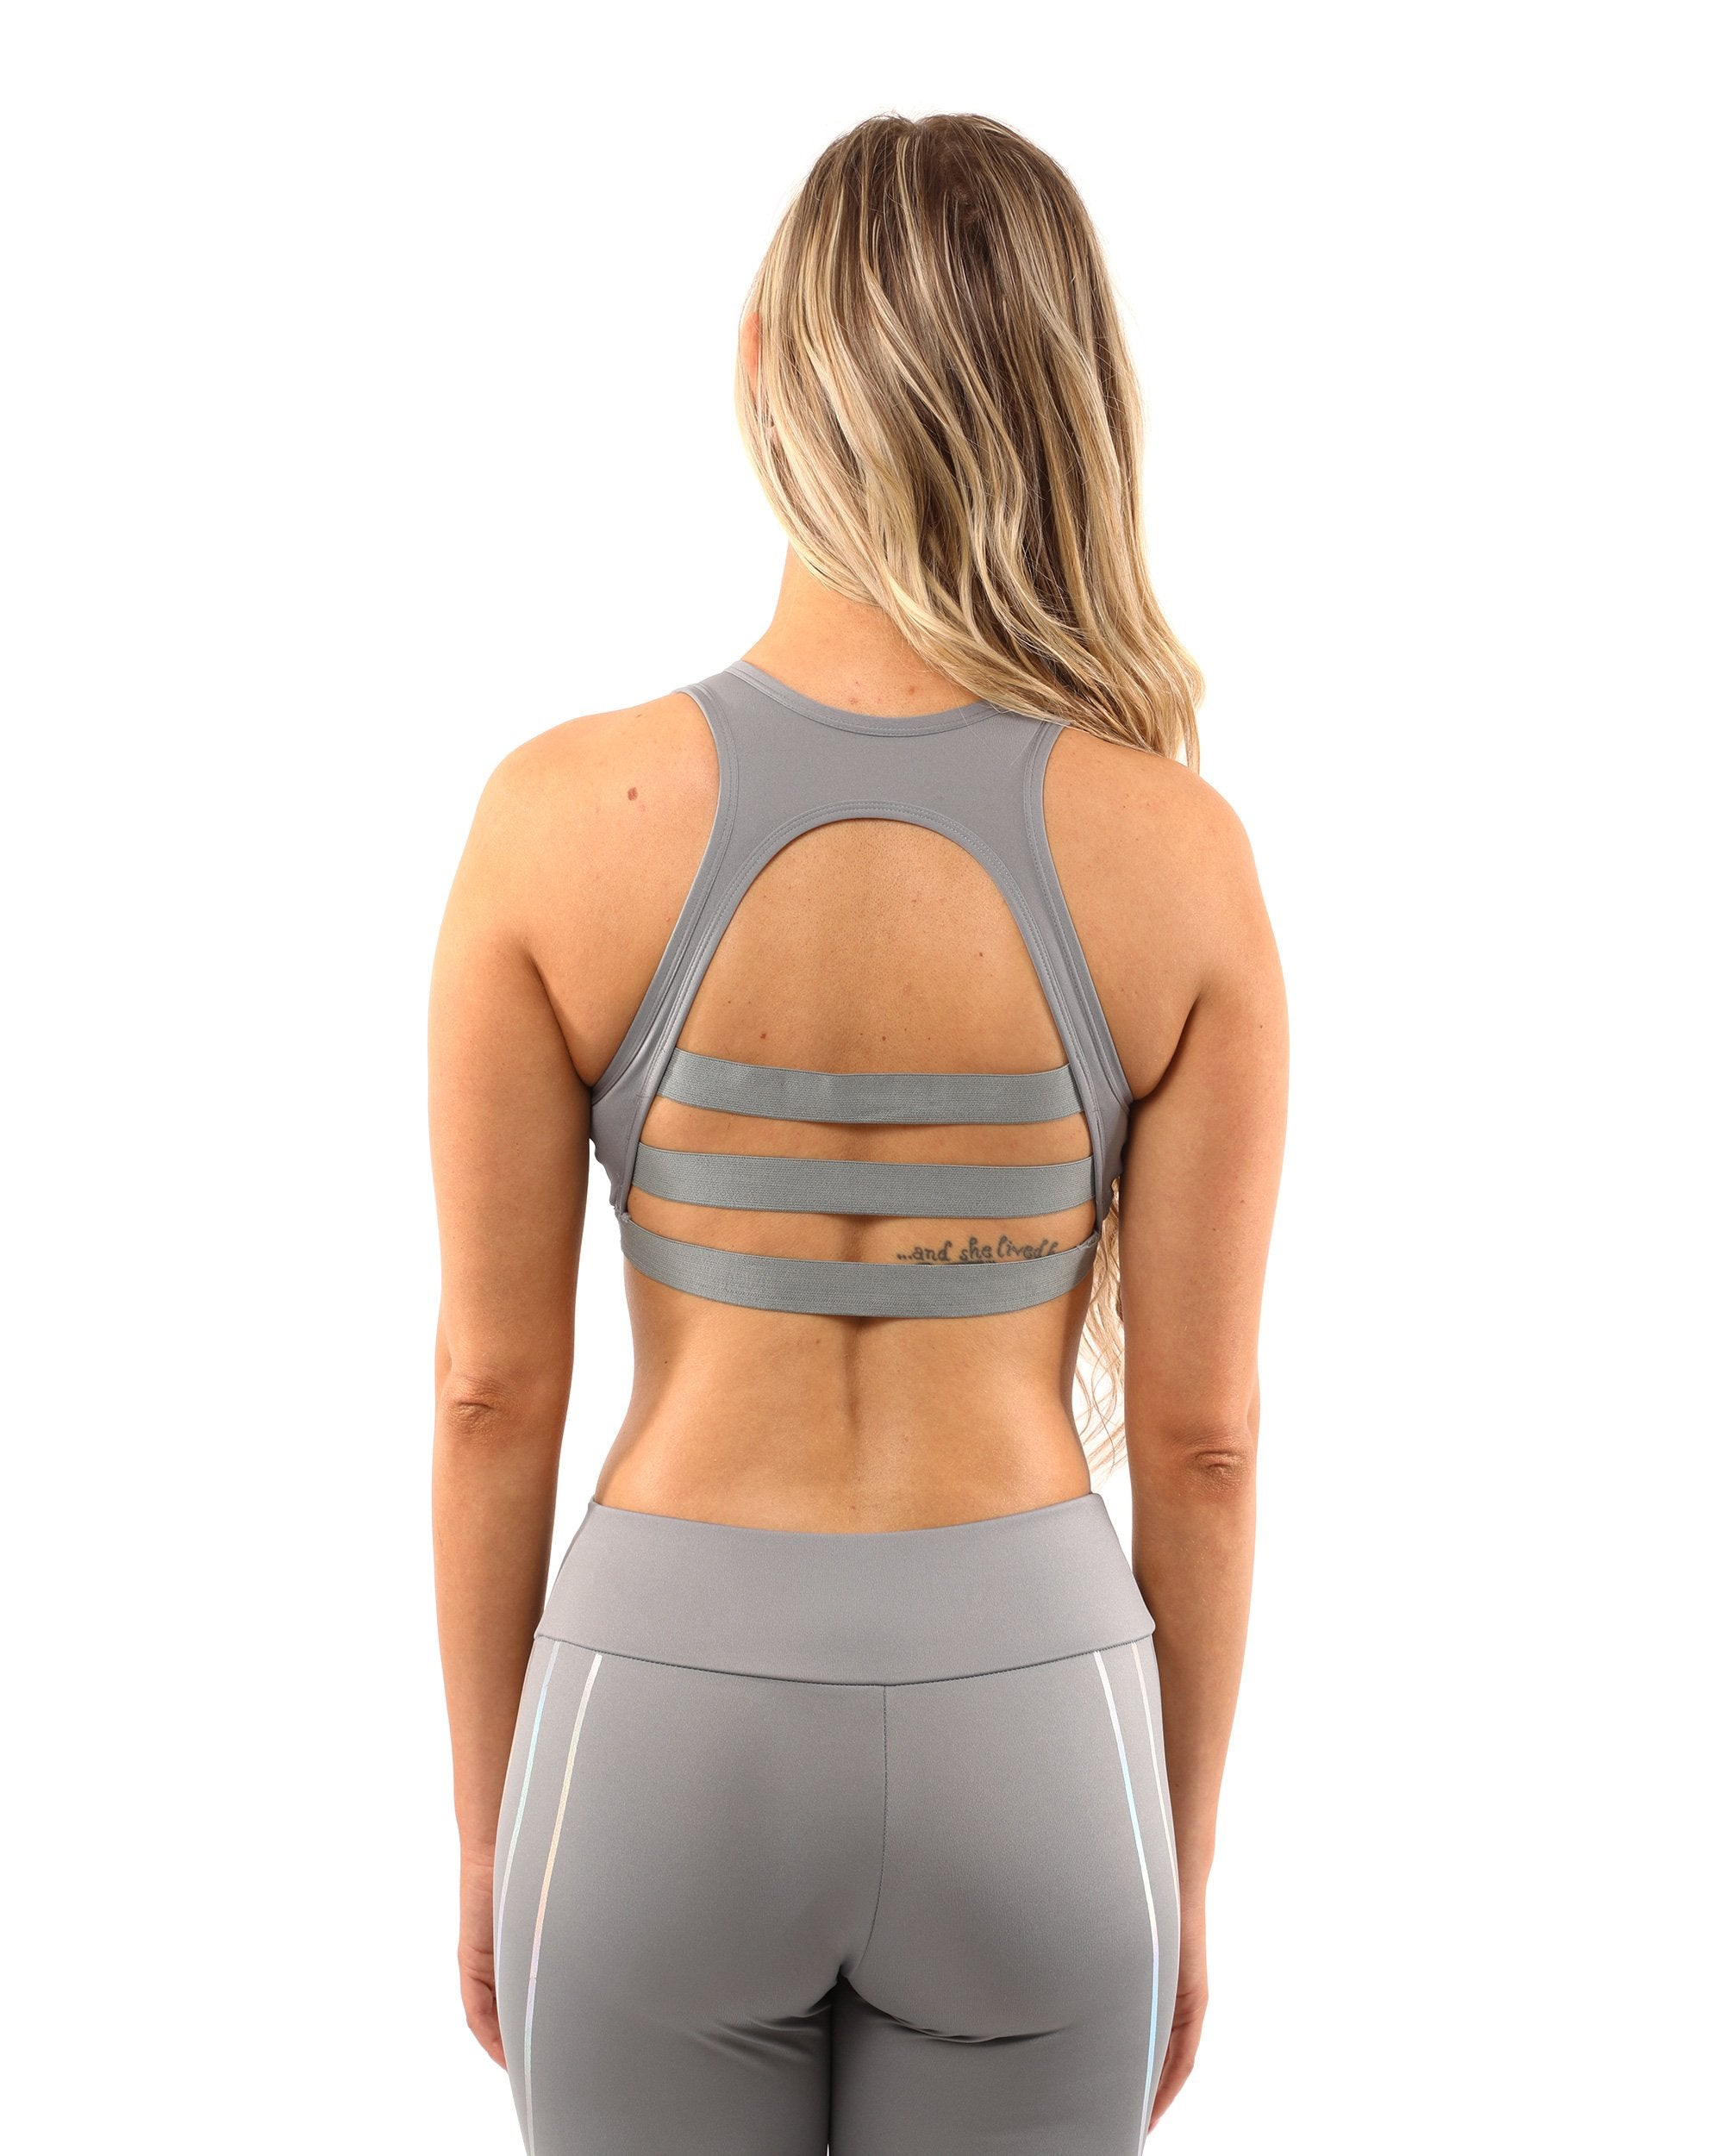 Laguna Set - Leggings & Sports Bra - Grey